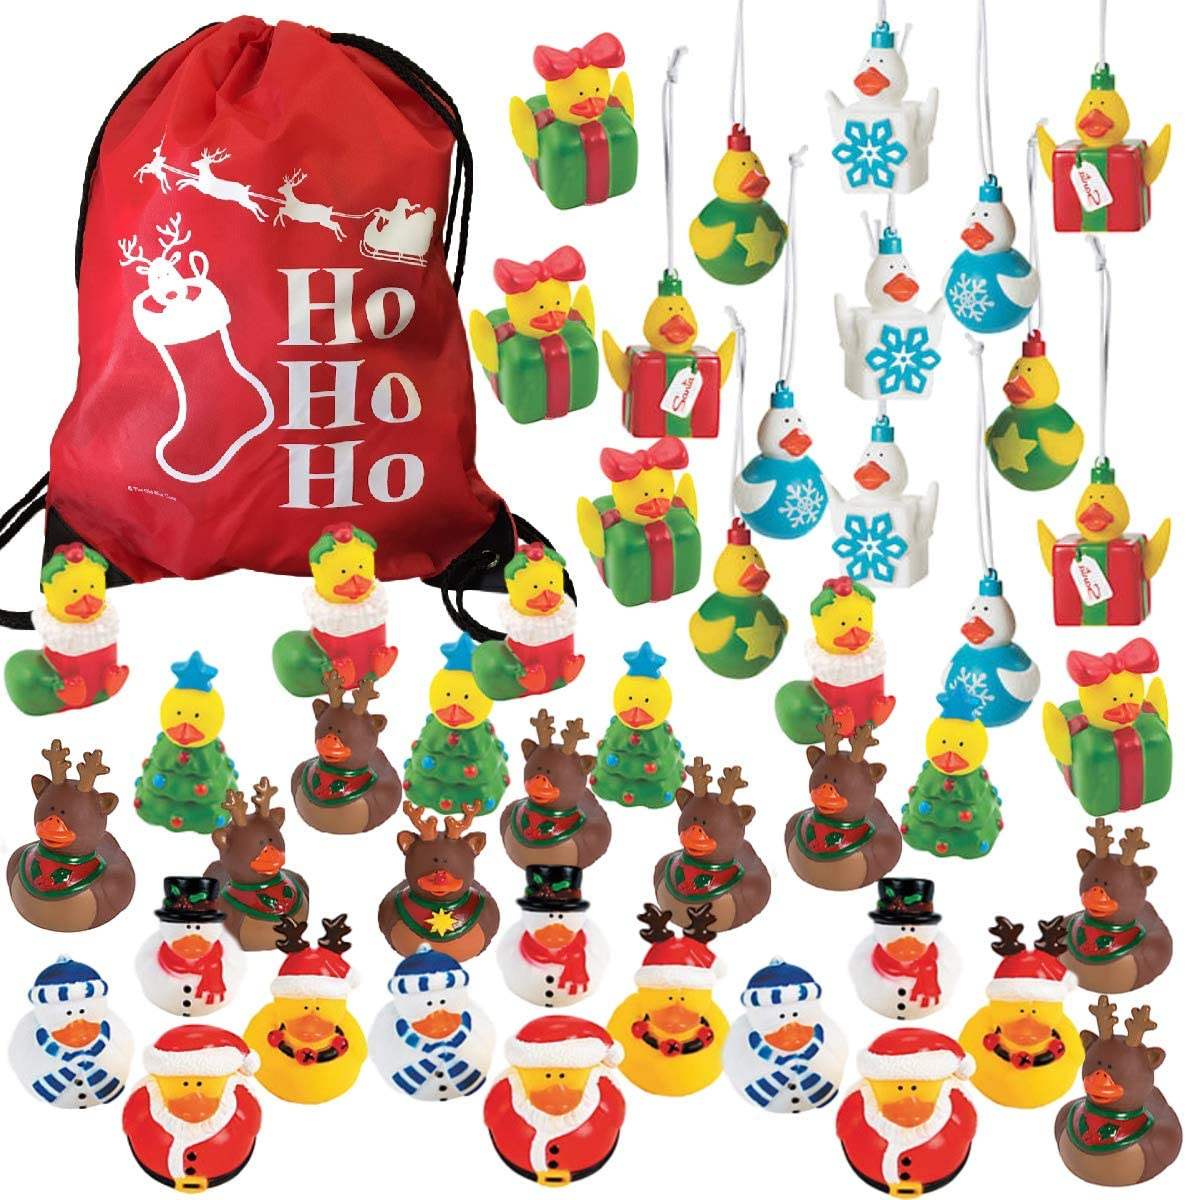 45 Christmas Holiday Rubber Duckies Bulk Variety Pack Assortment with 1 Ho Ho Ho Drawstring Bag - Stocking Stuffers - Festive Party Favors - Kids Novelty Toys Prizes Handouts